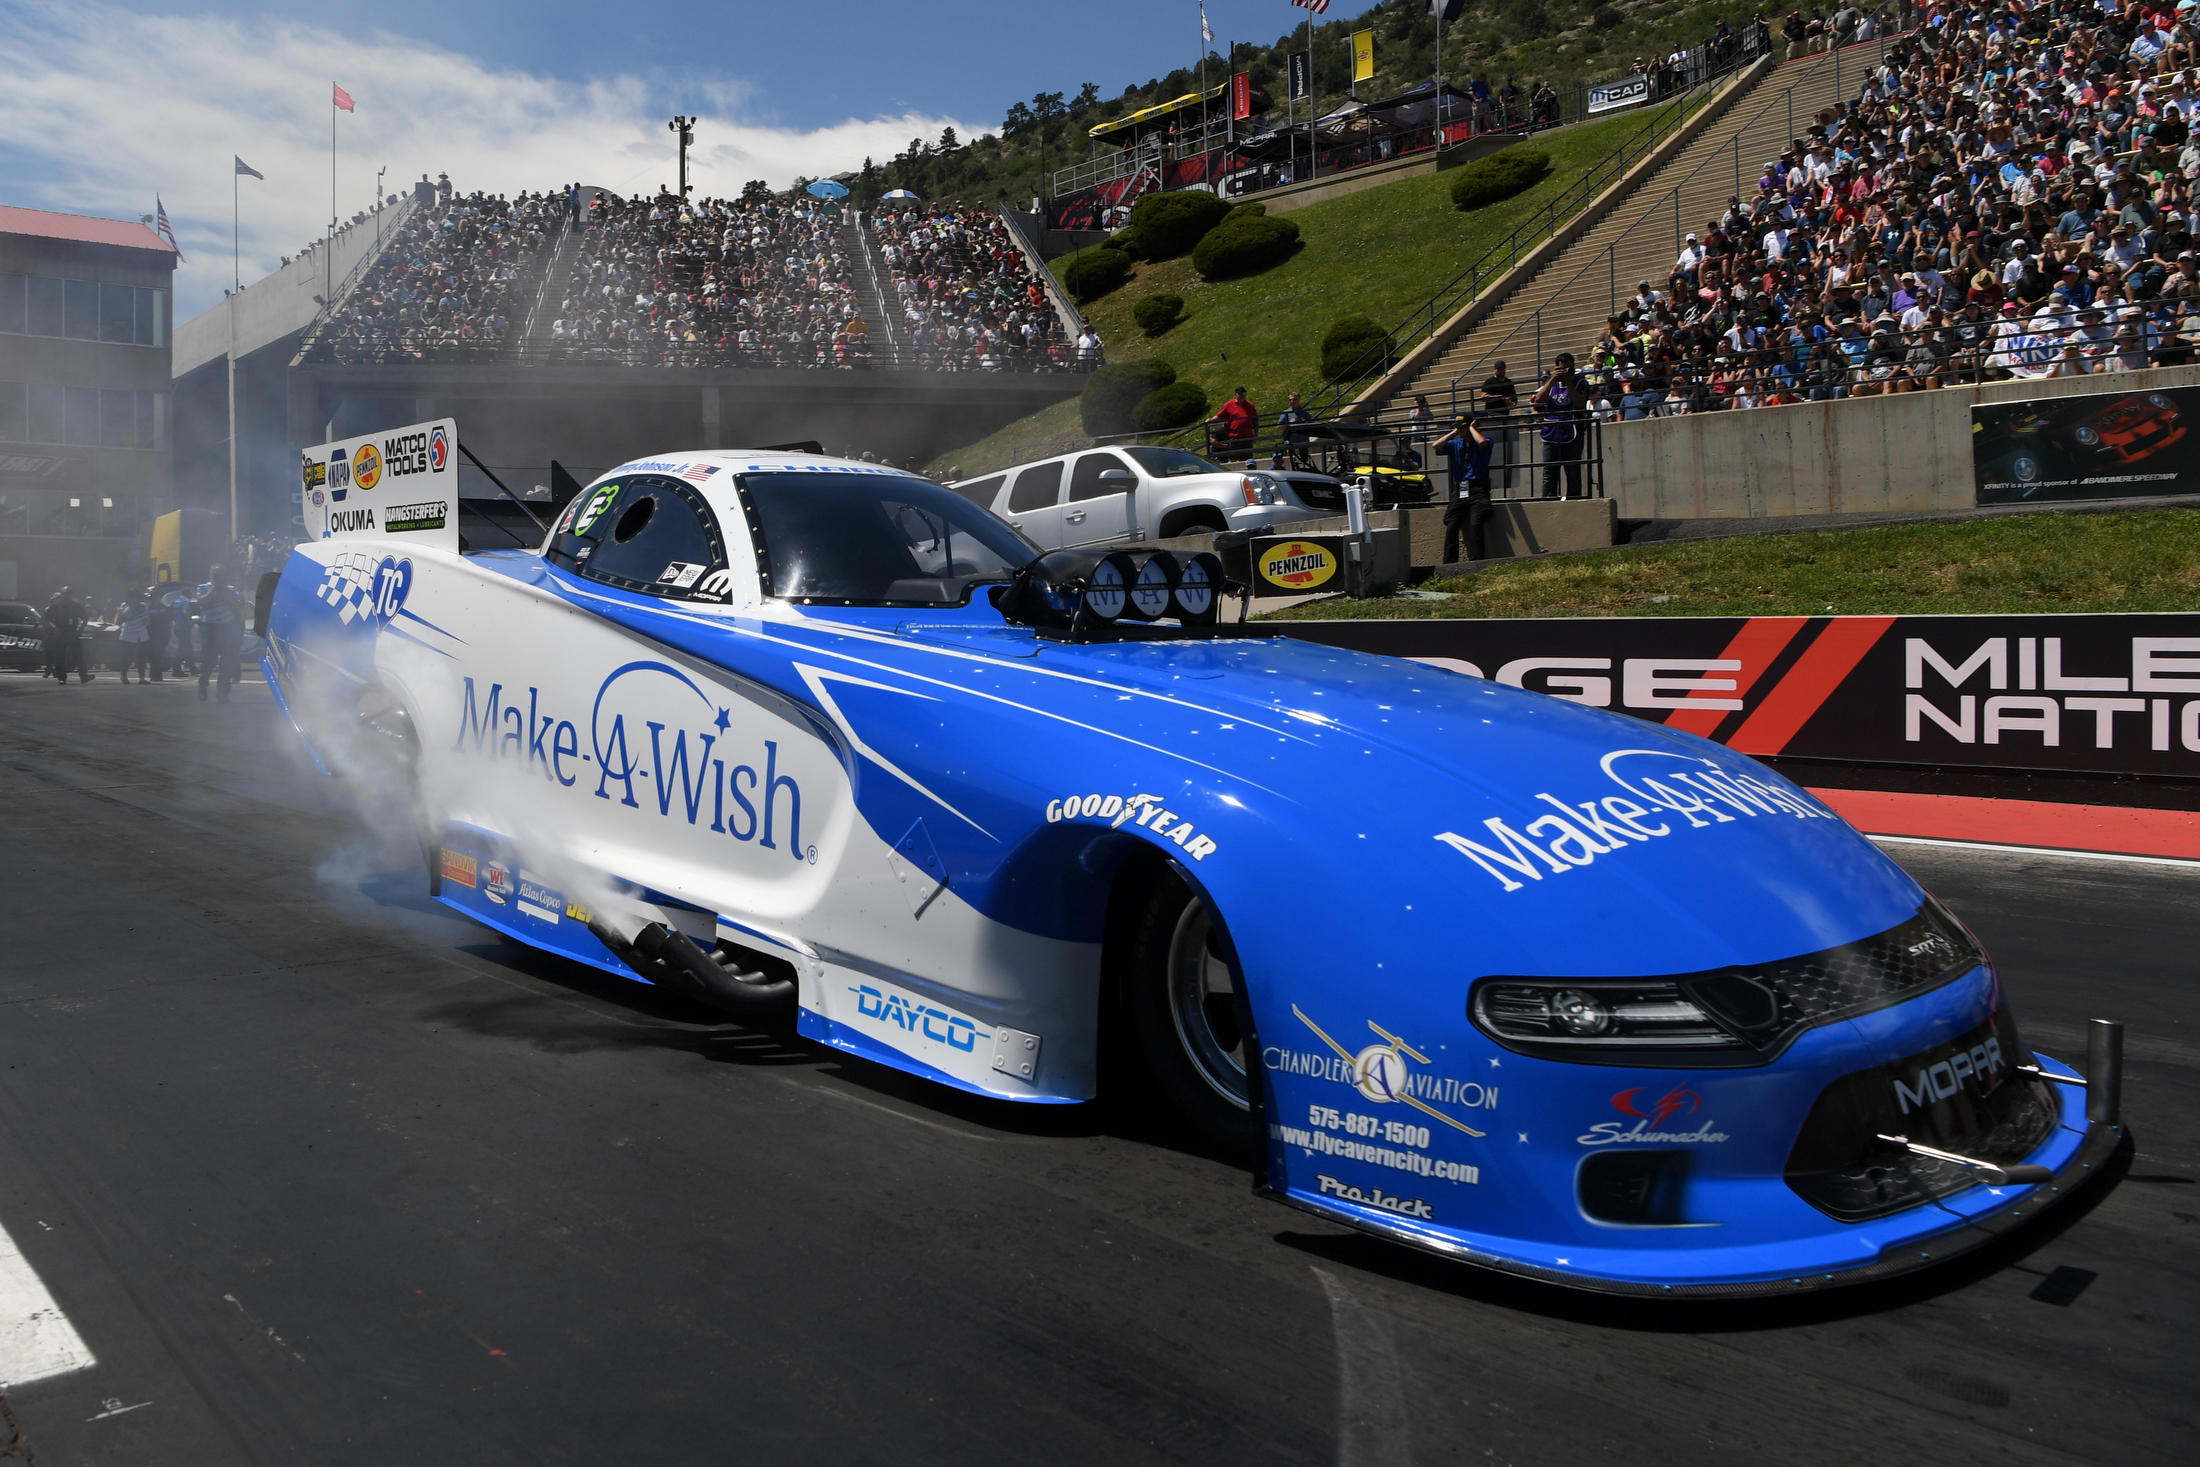 Funny Car pilot Tommy Johnson Jr. racing on Sunday at the 2019 Dodge Mile-High NHRA Nationals